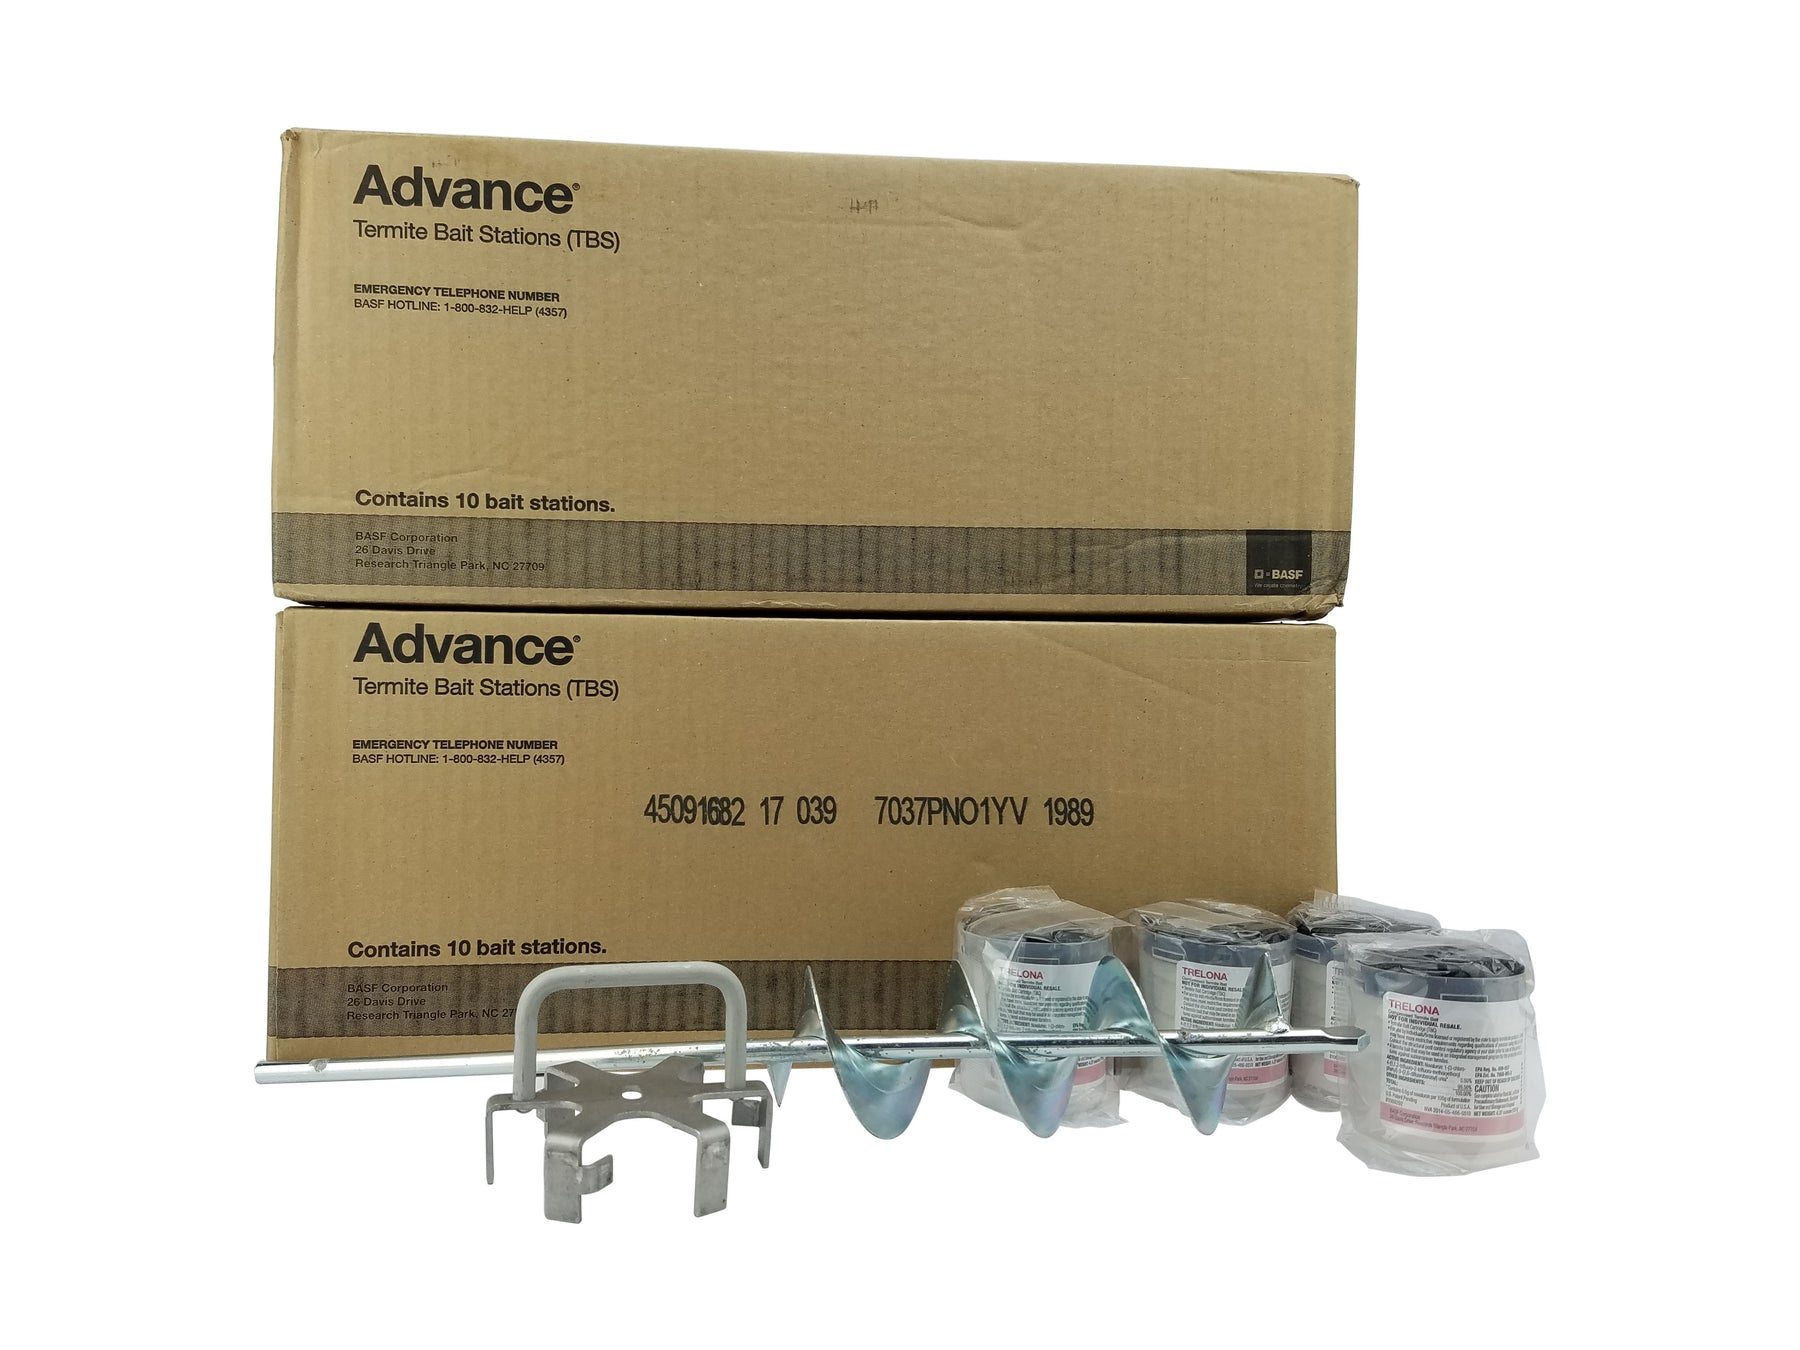 Advance Termite Bait Station Professional Kit